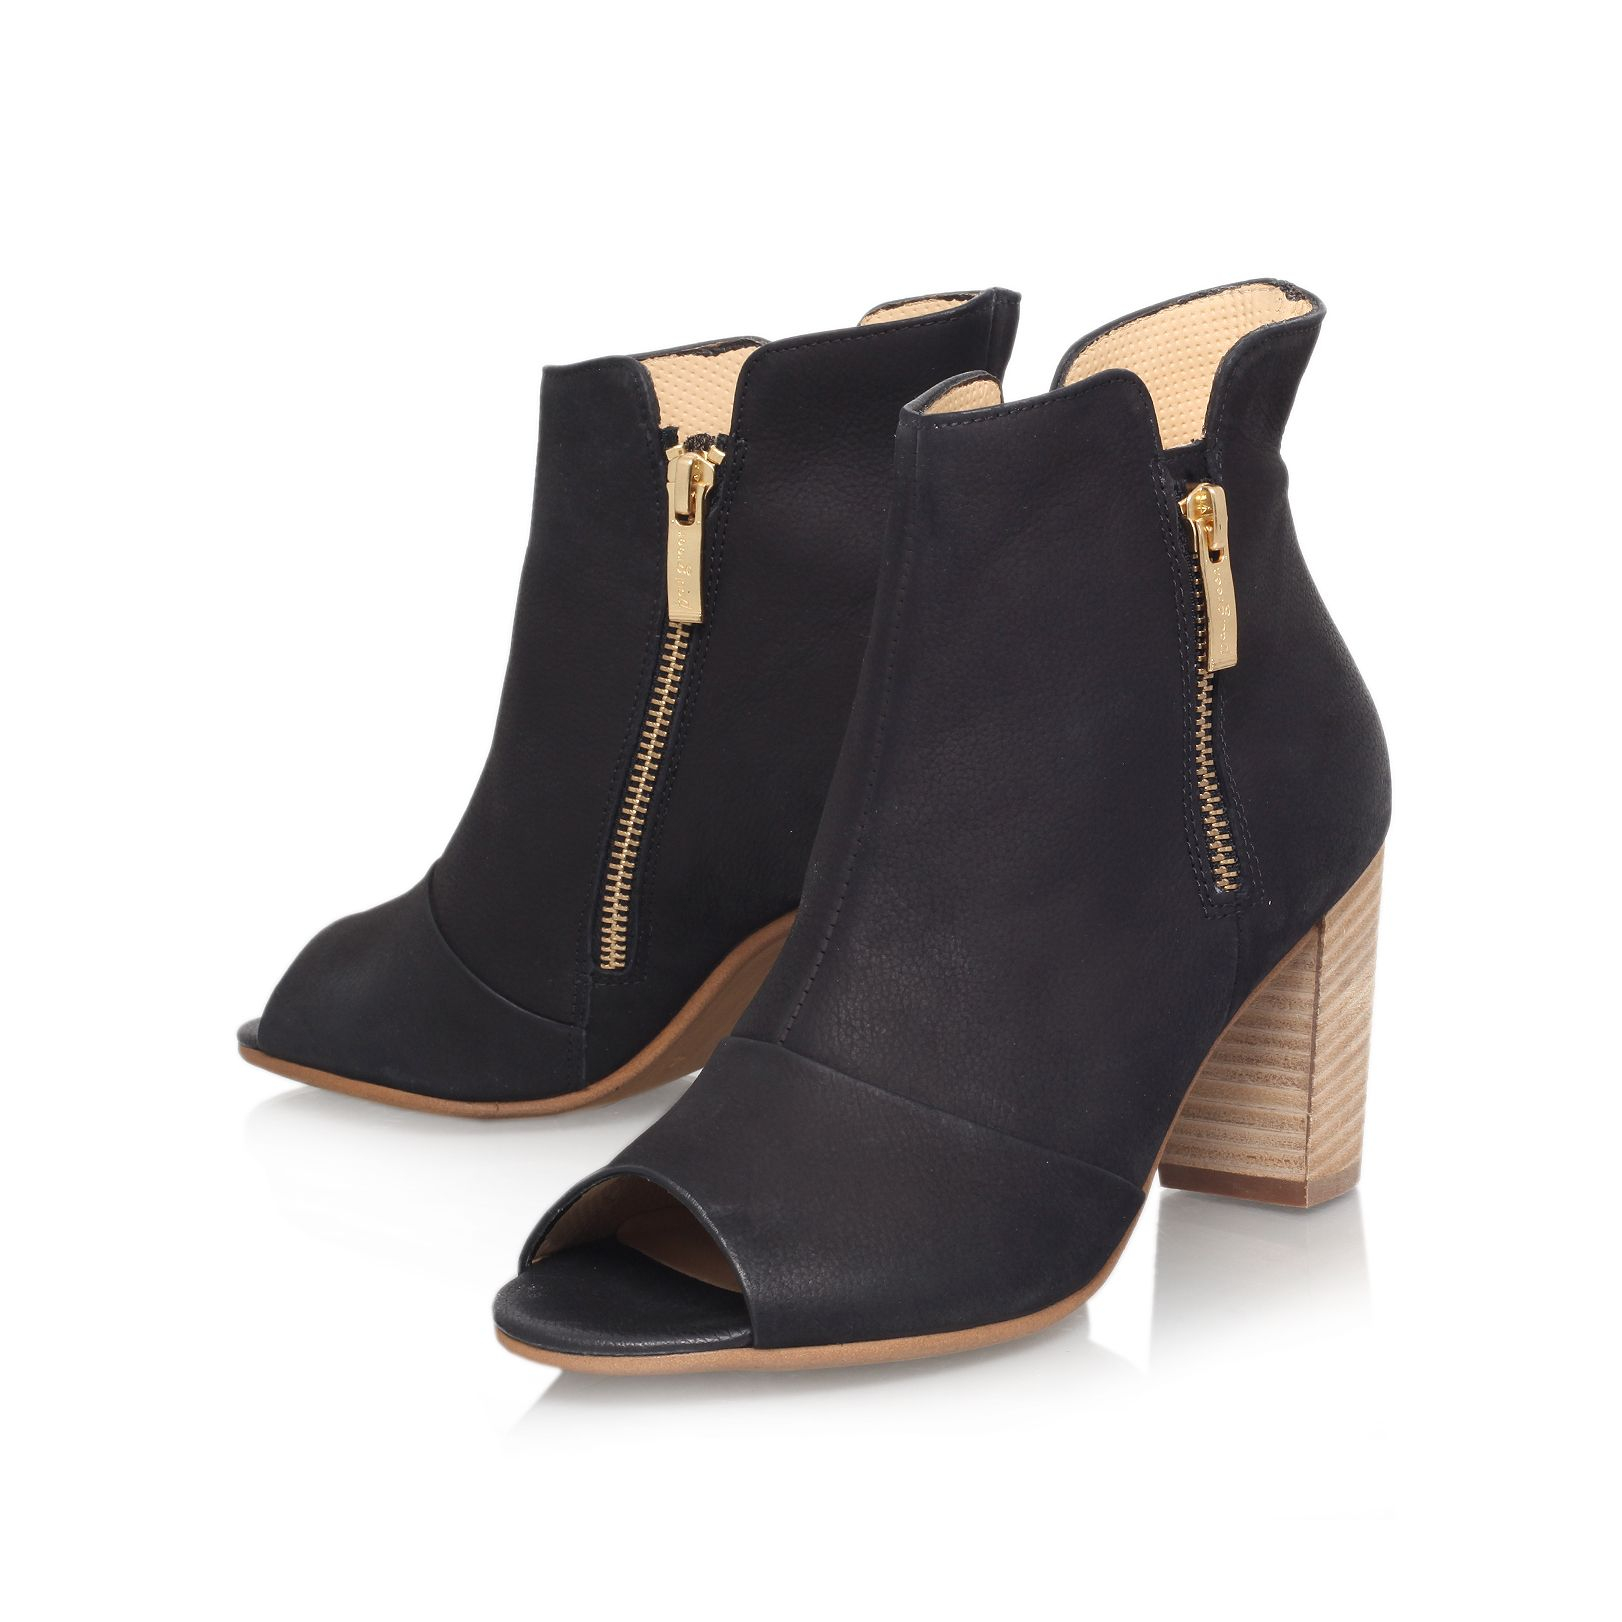 Paul green Annie Mid Heel Peep Toe Ankle Boots in Brown | Lyst